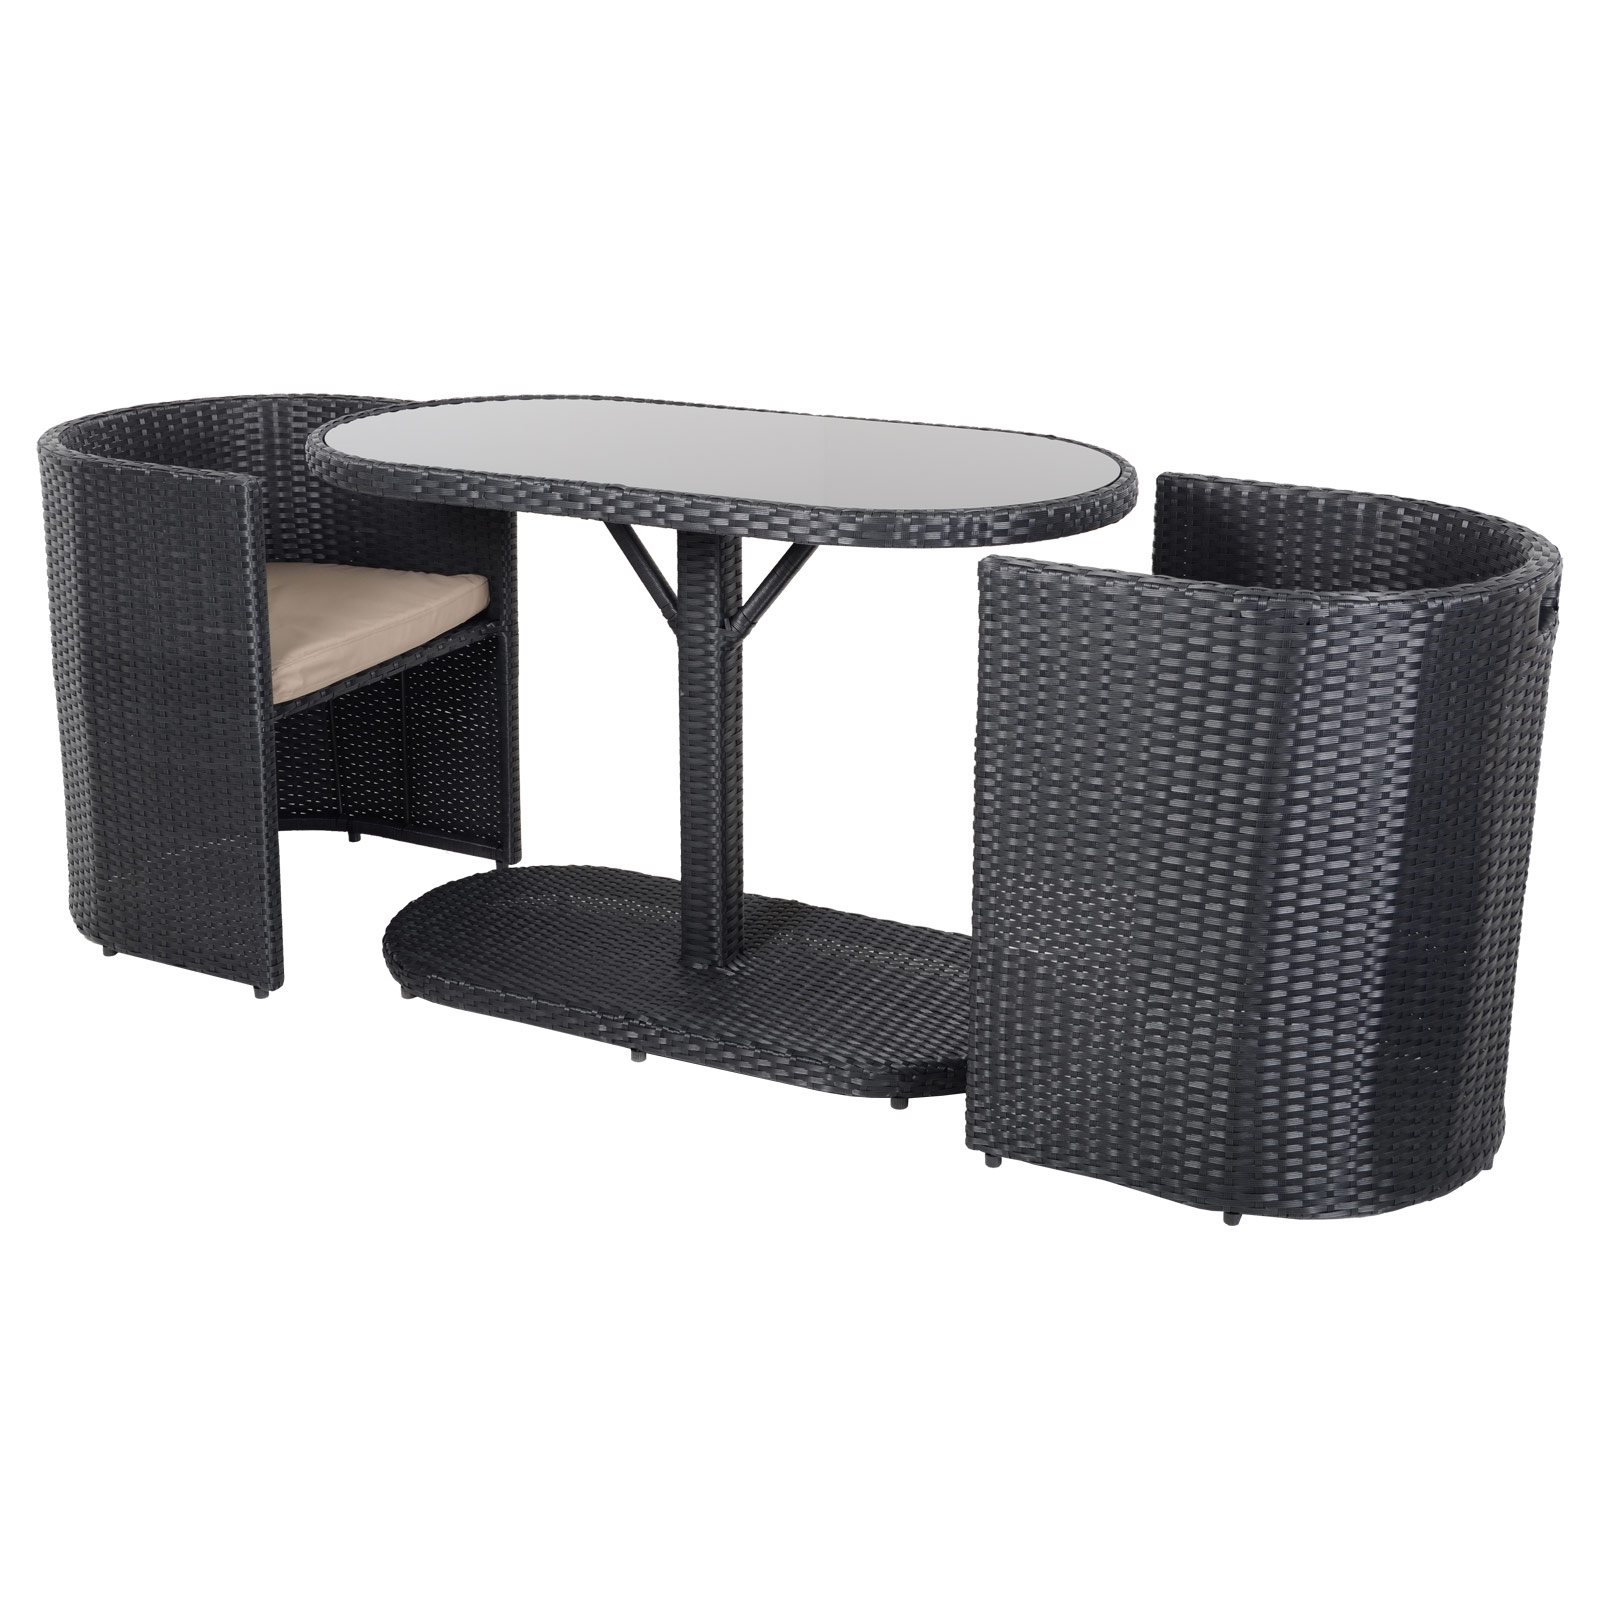 Latina Bistro Garden Glass Top Table Furniture Set With 2 Rattan